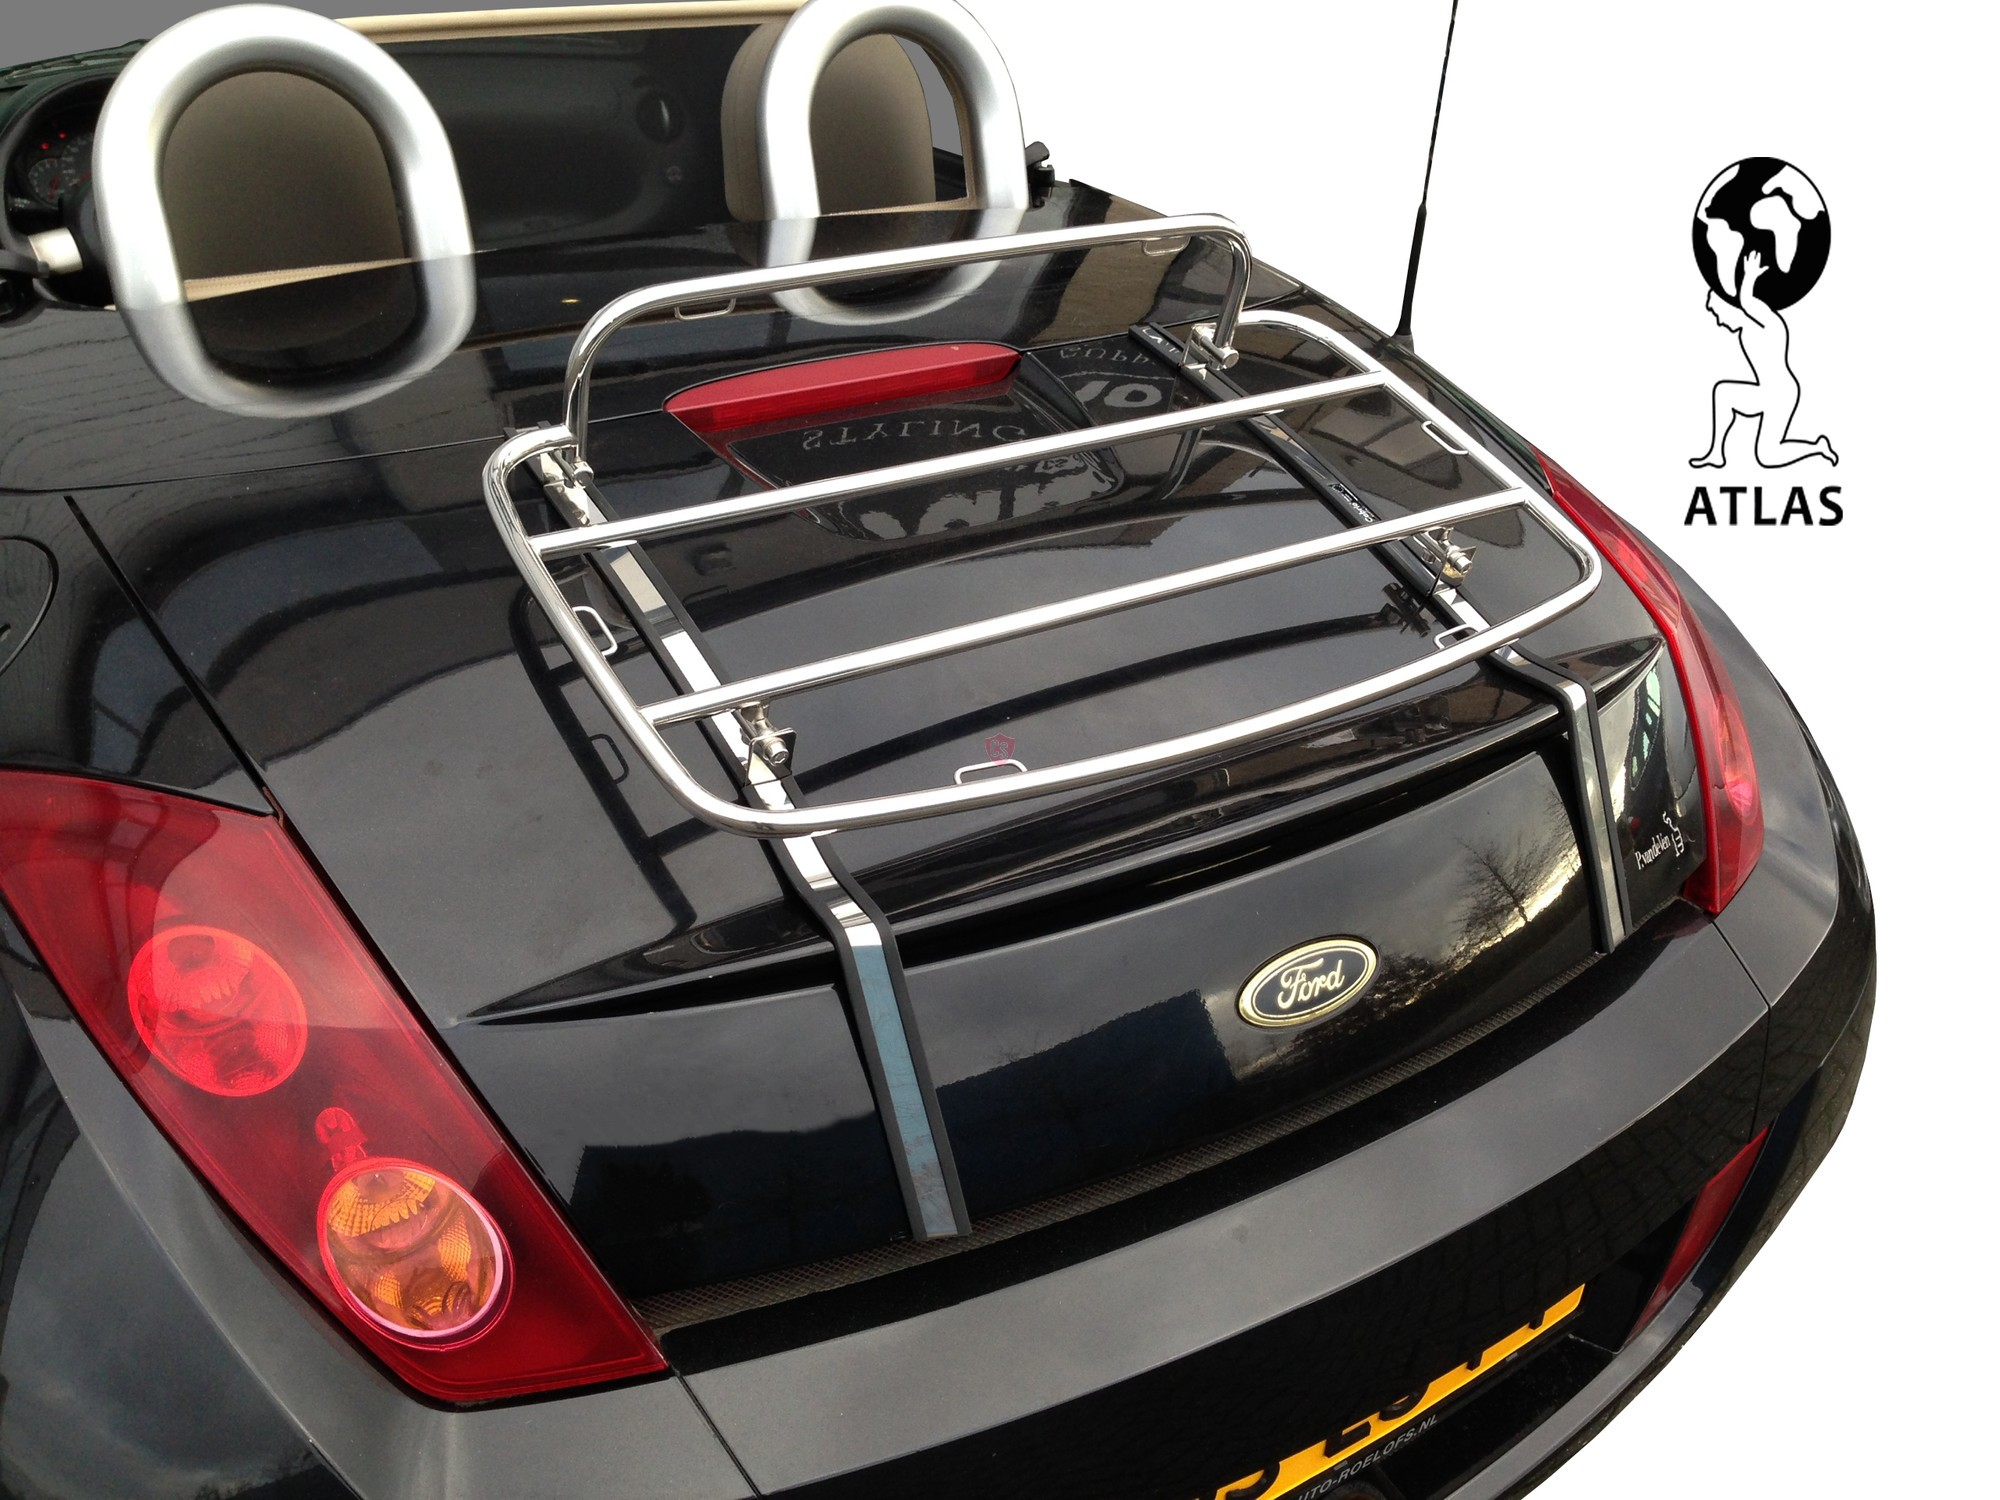 ford street ka luggage rack 2003 2005 cabrio supply. Black Bedroom Furniture Sets. Home Design Ideas